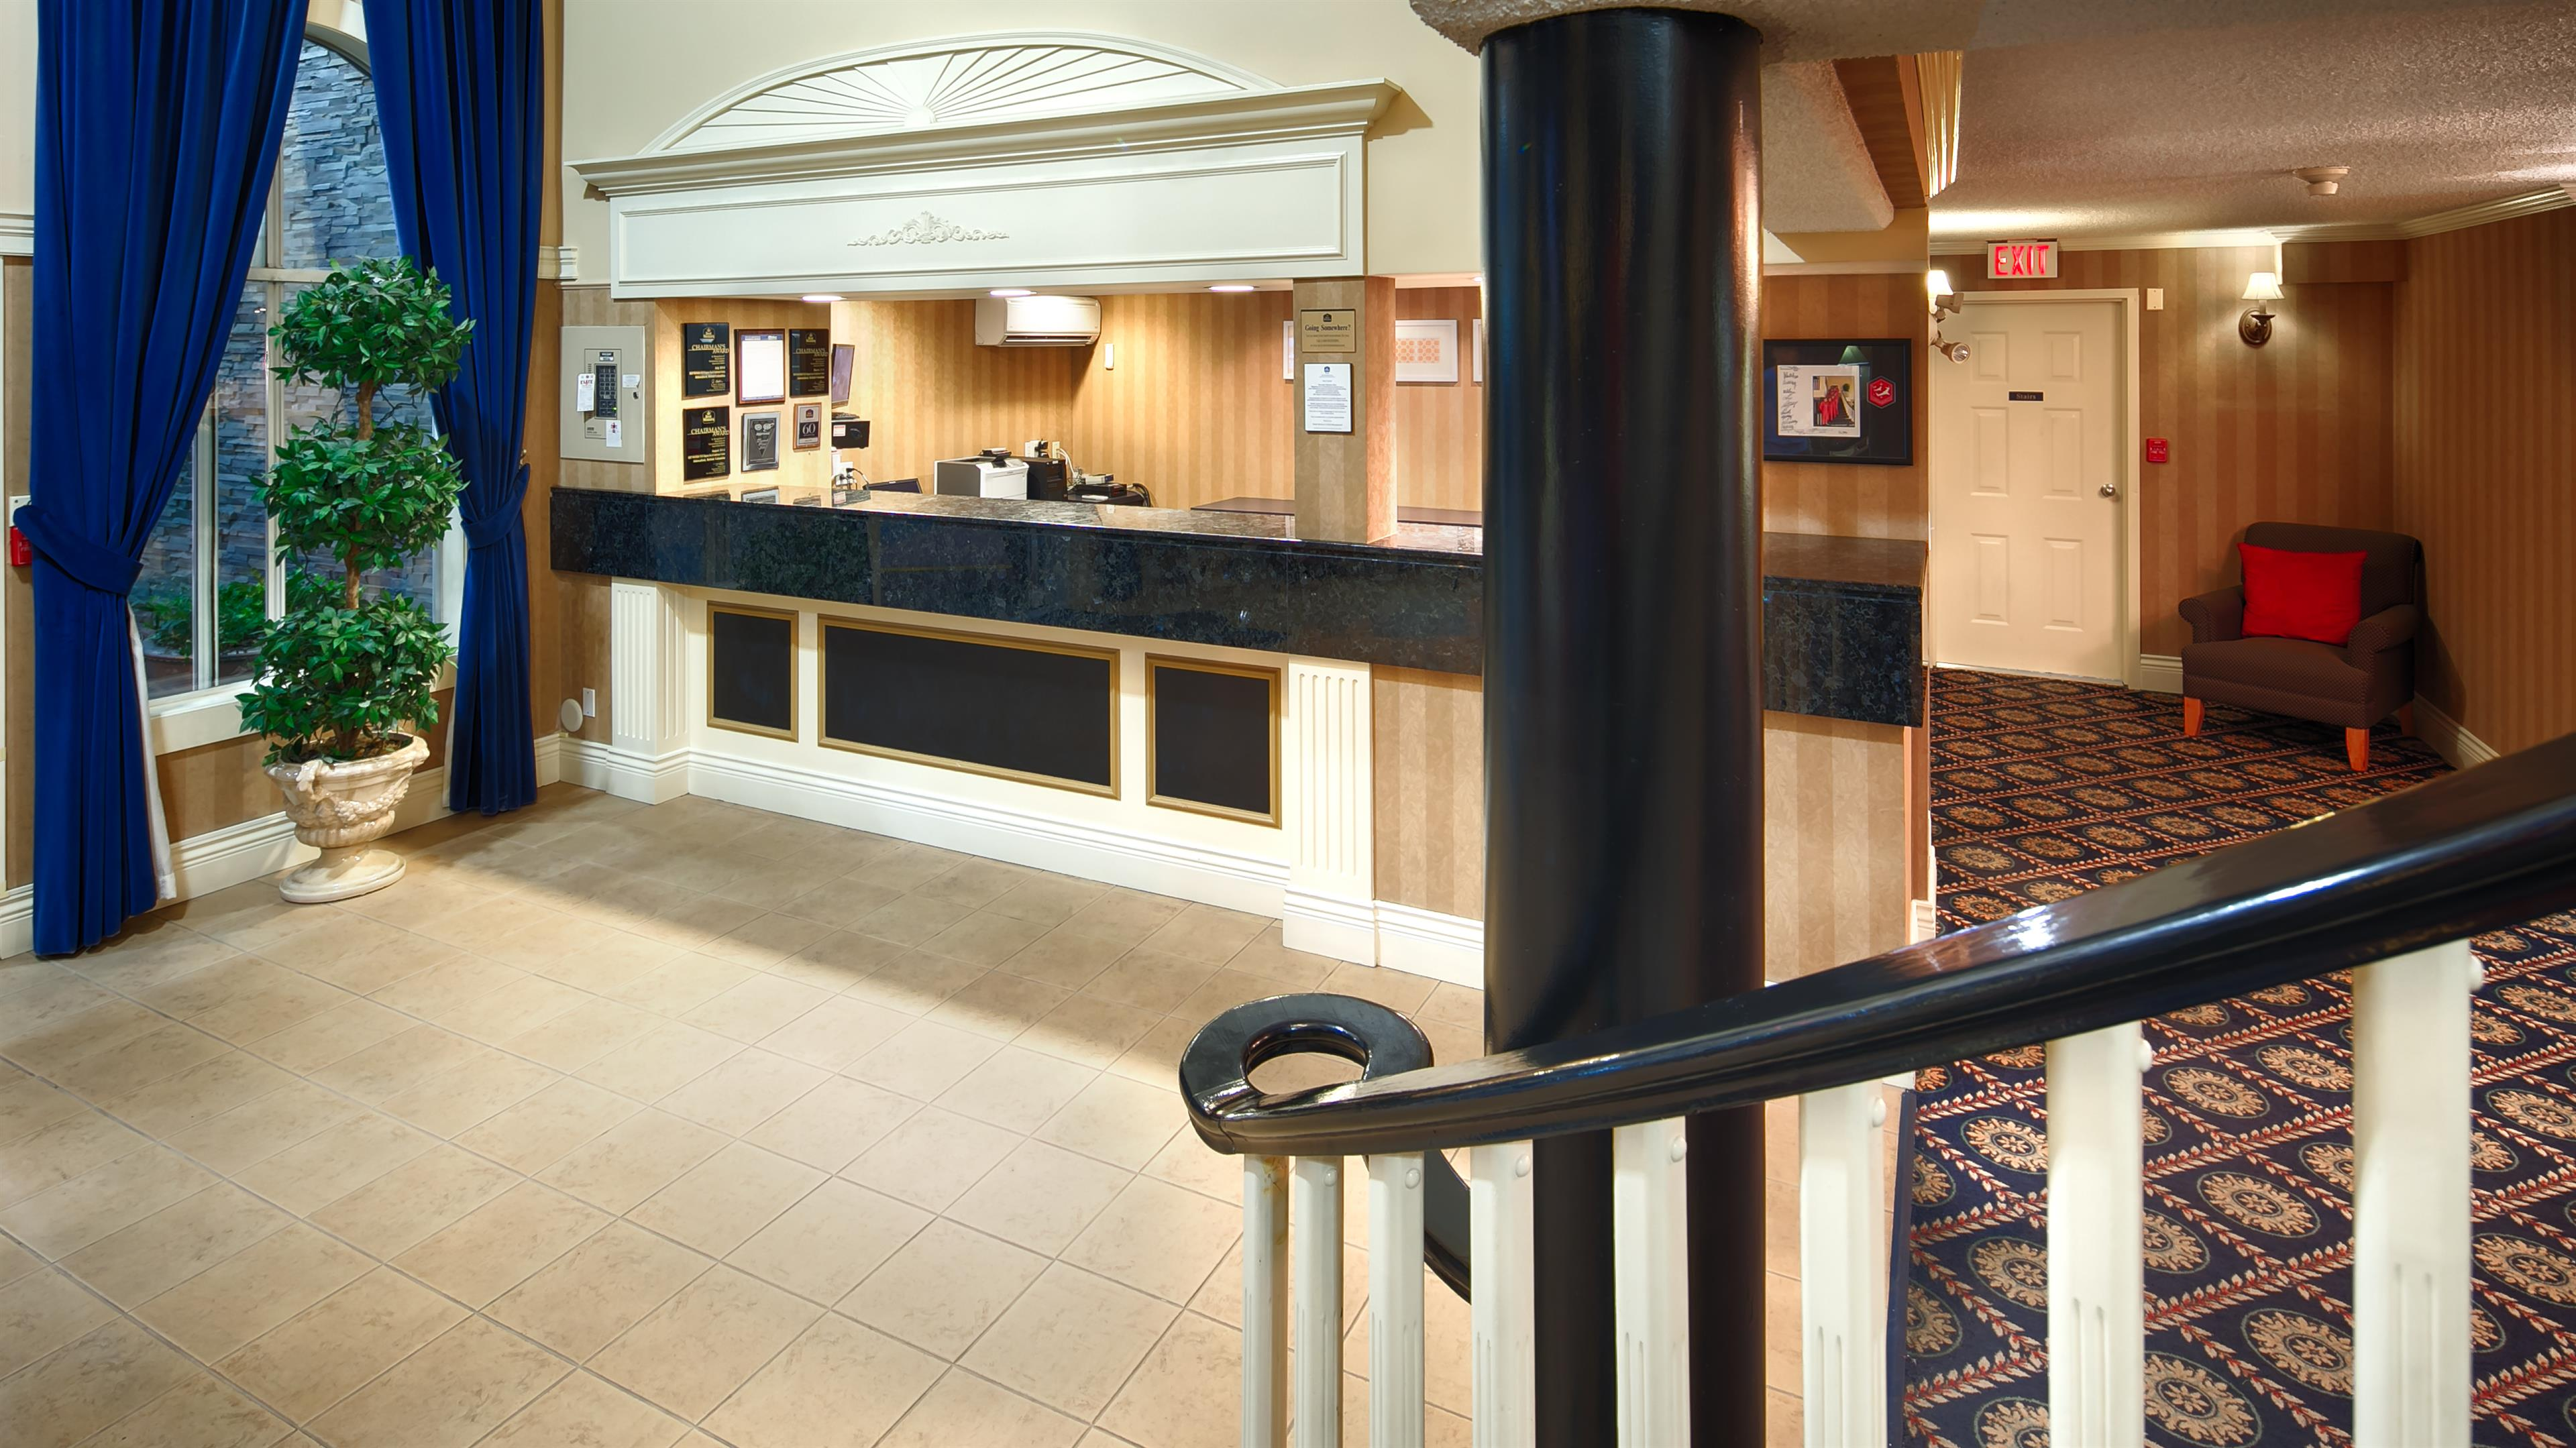 Best Western Plus Regency Inn & Conference Centre in Abbotsford: Lobby